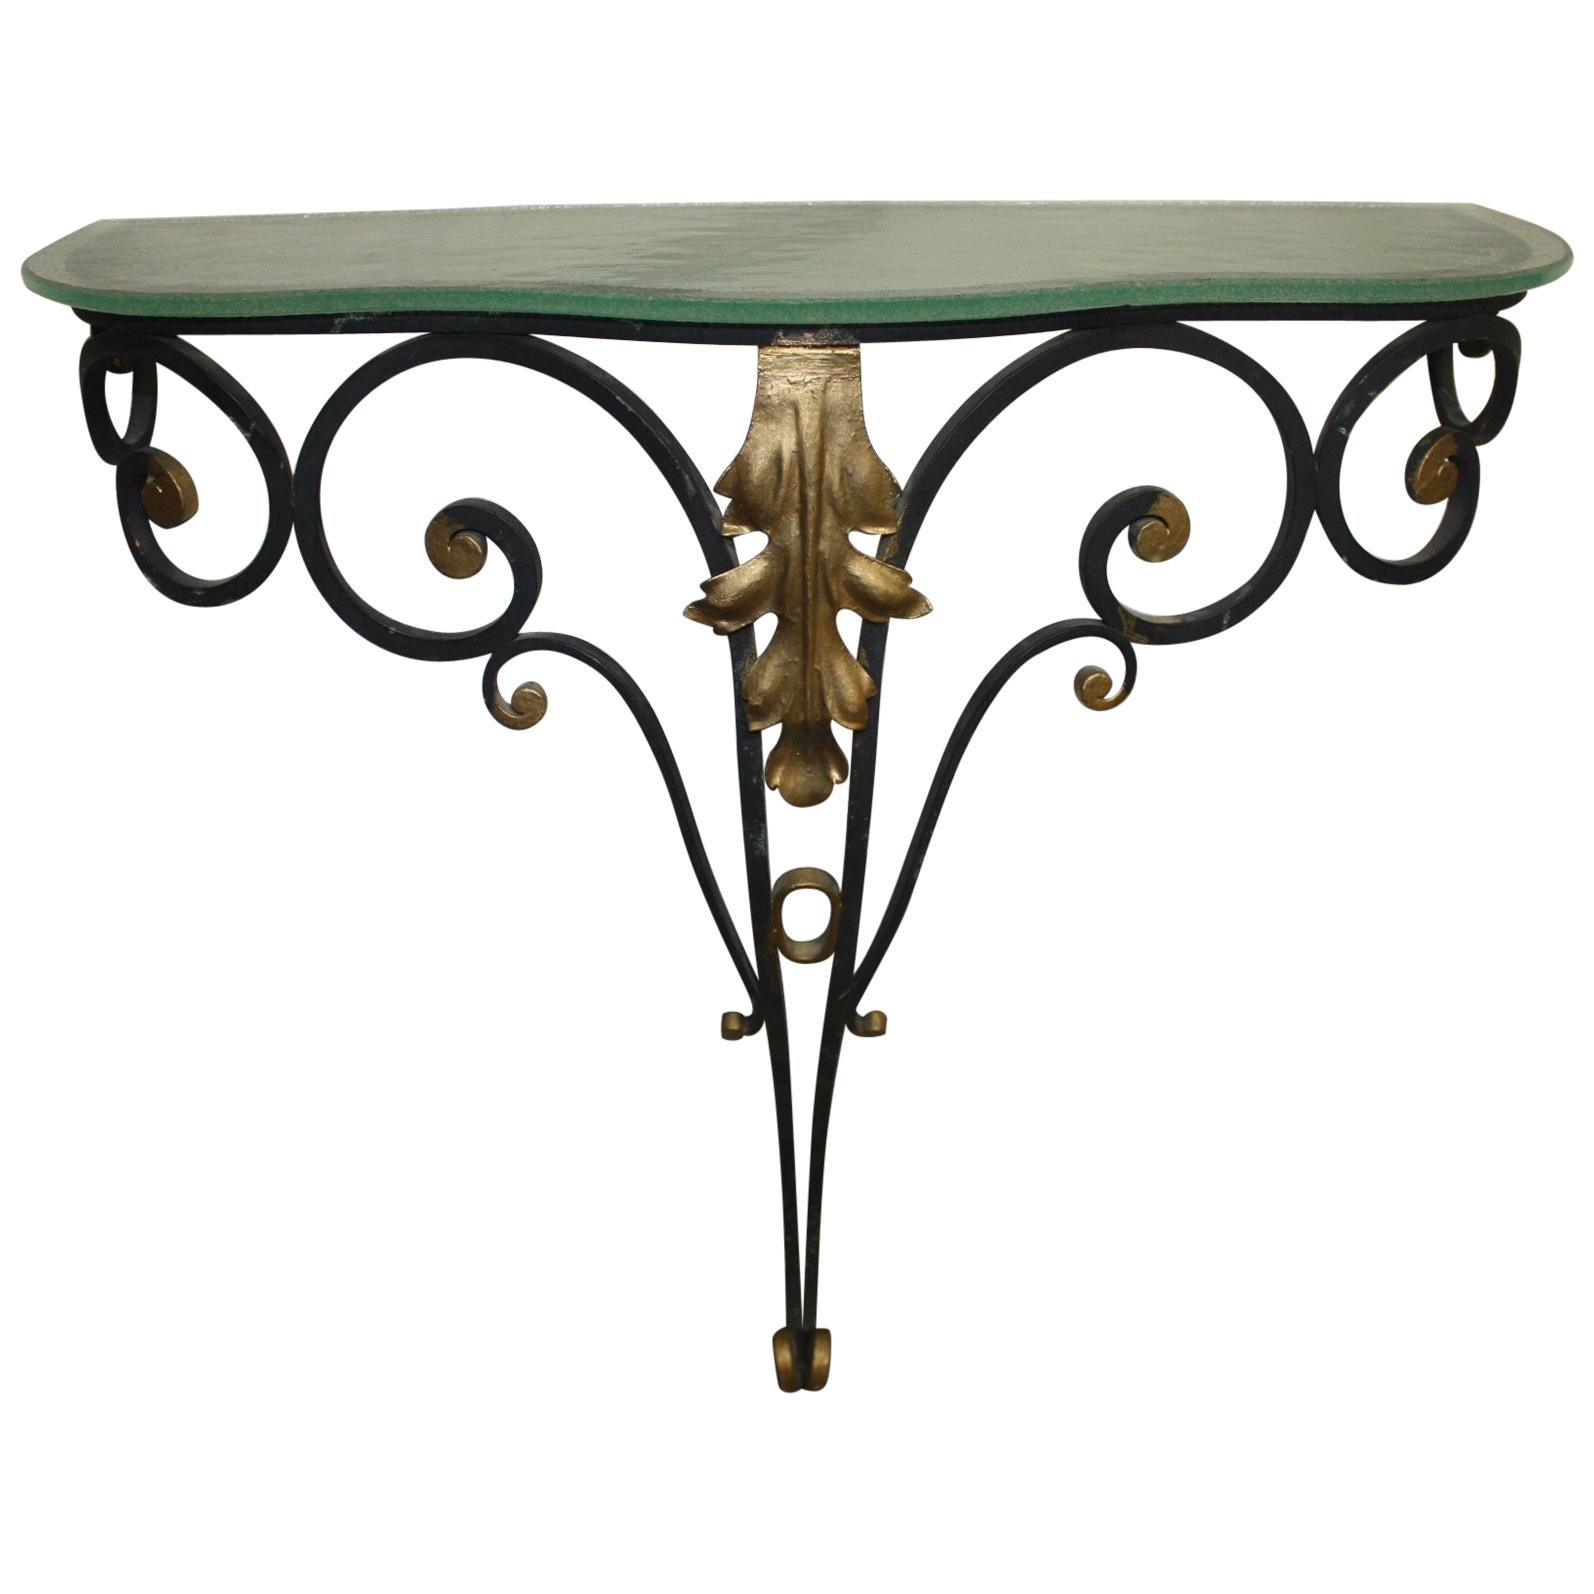 Charming Early 20th Century Iron Console